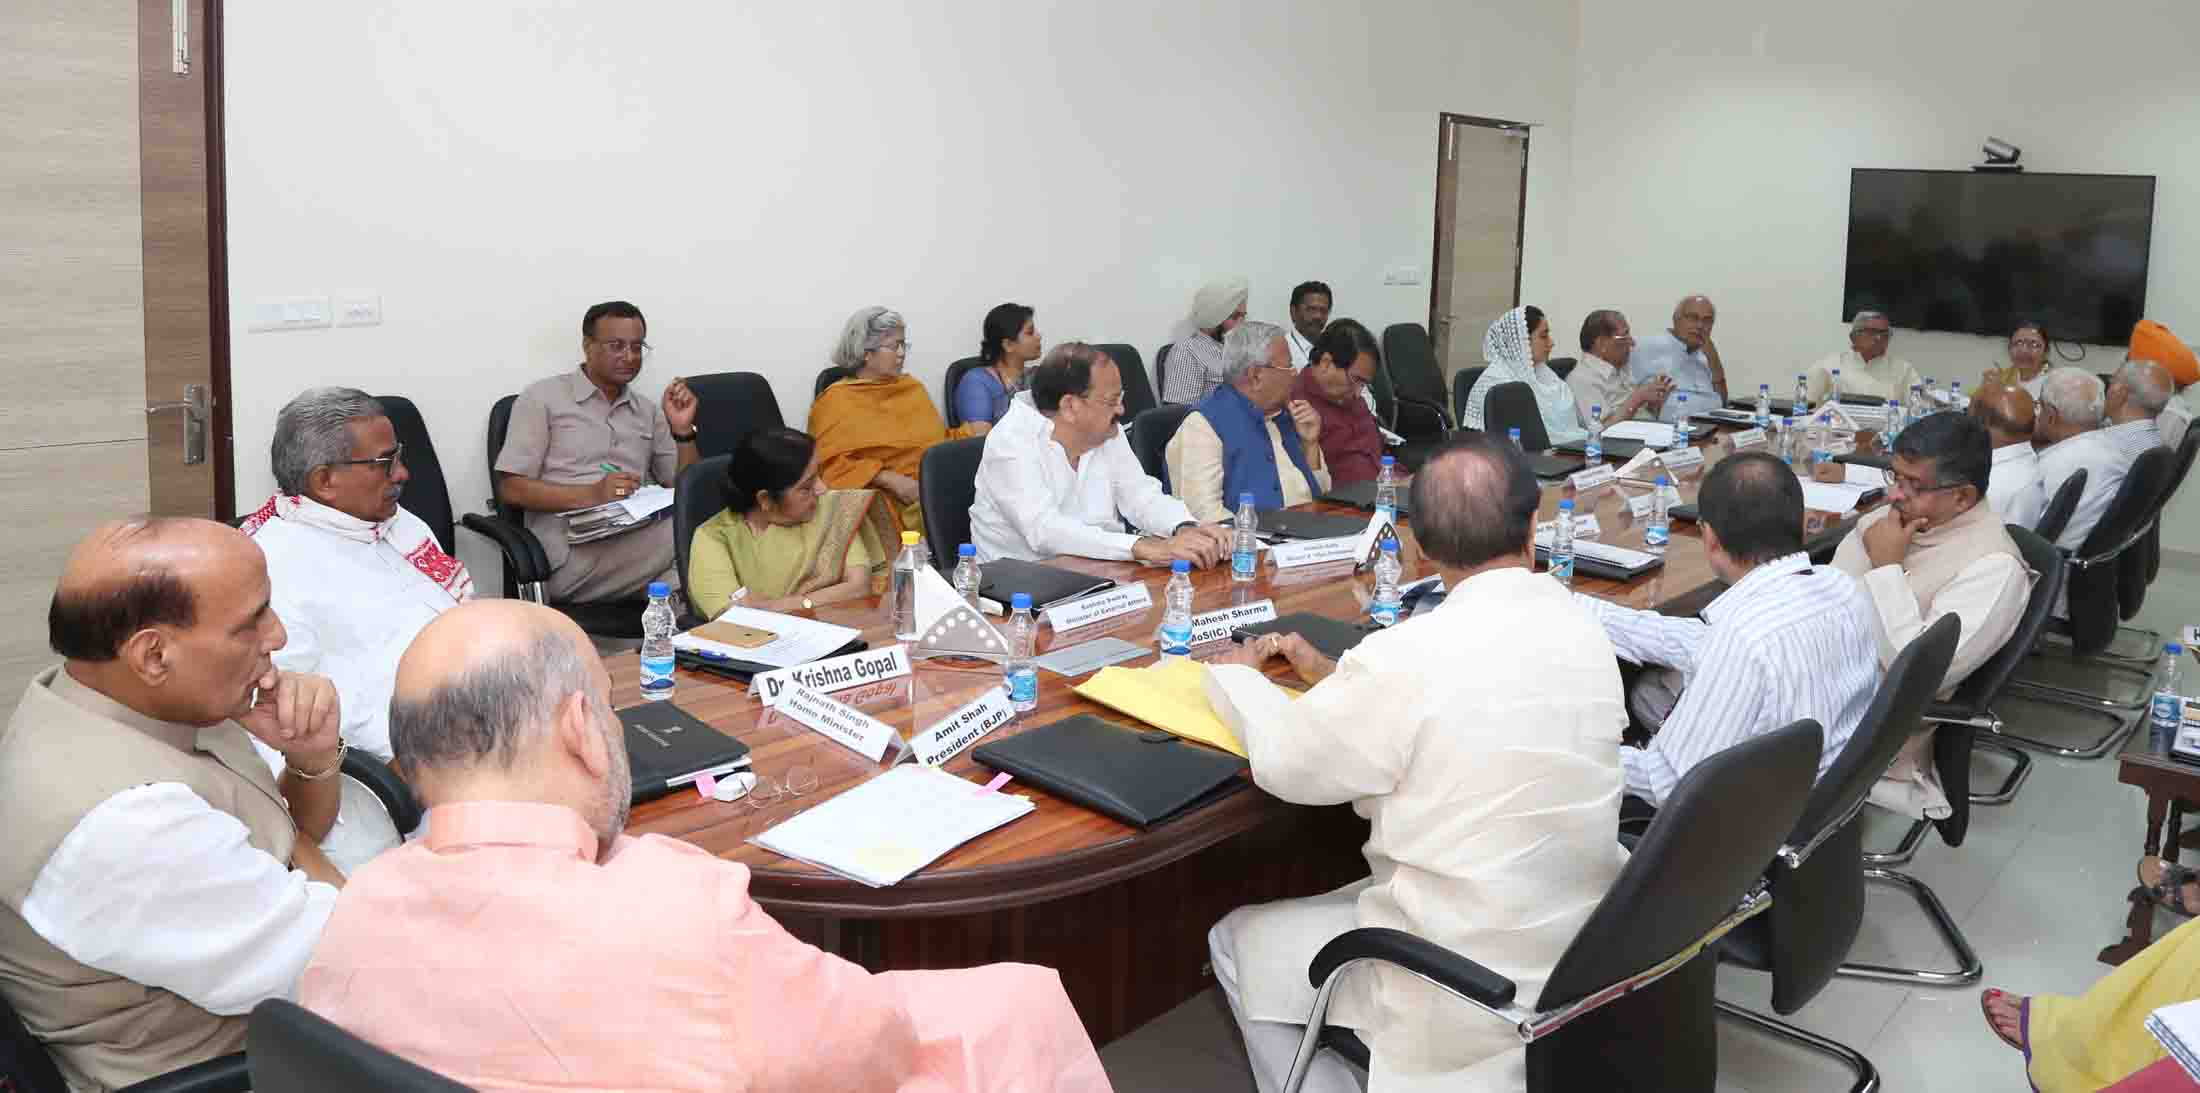 The Union Home Minister, Shri Rajnath Singh chairing the 3rd Meeting of the Executive Committee to Commemorate the 350th Birth Anniversary of Guru Govind Singh Ji and Birth Centenary of Pt. Deen Dayal Upaddyaya, in New Delhi on June 07, 2017.